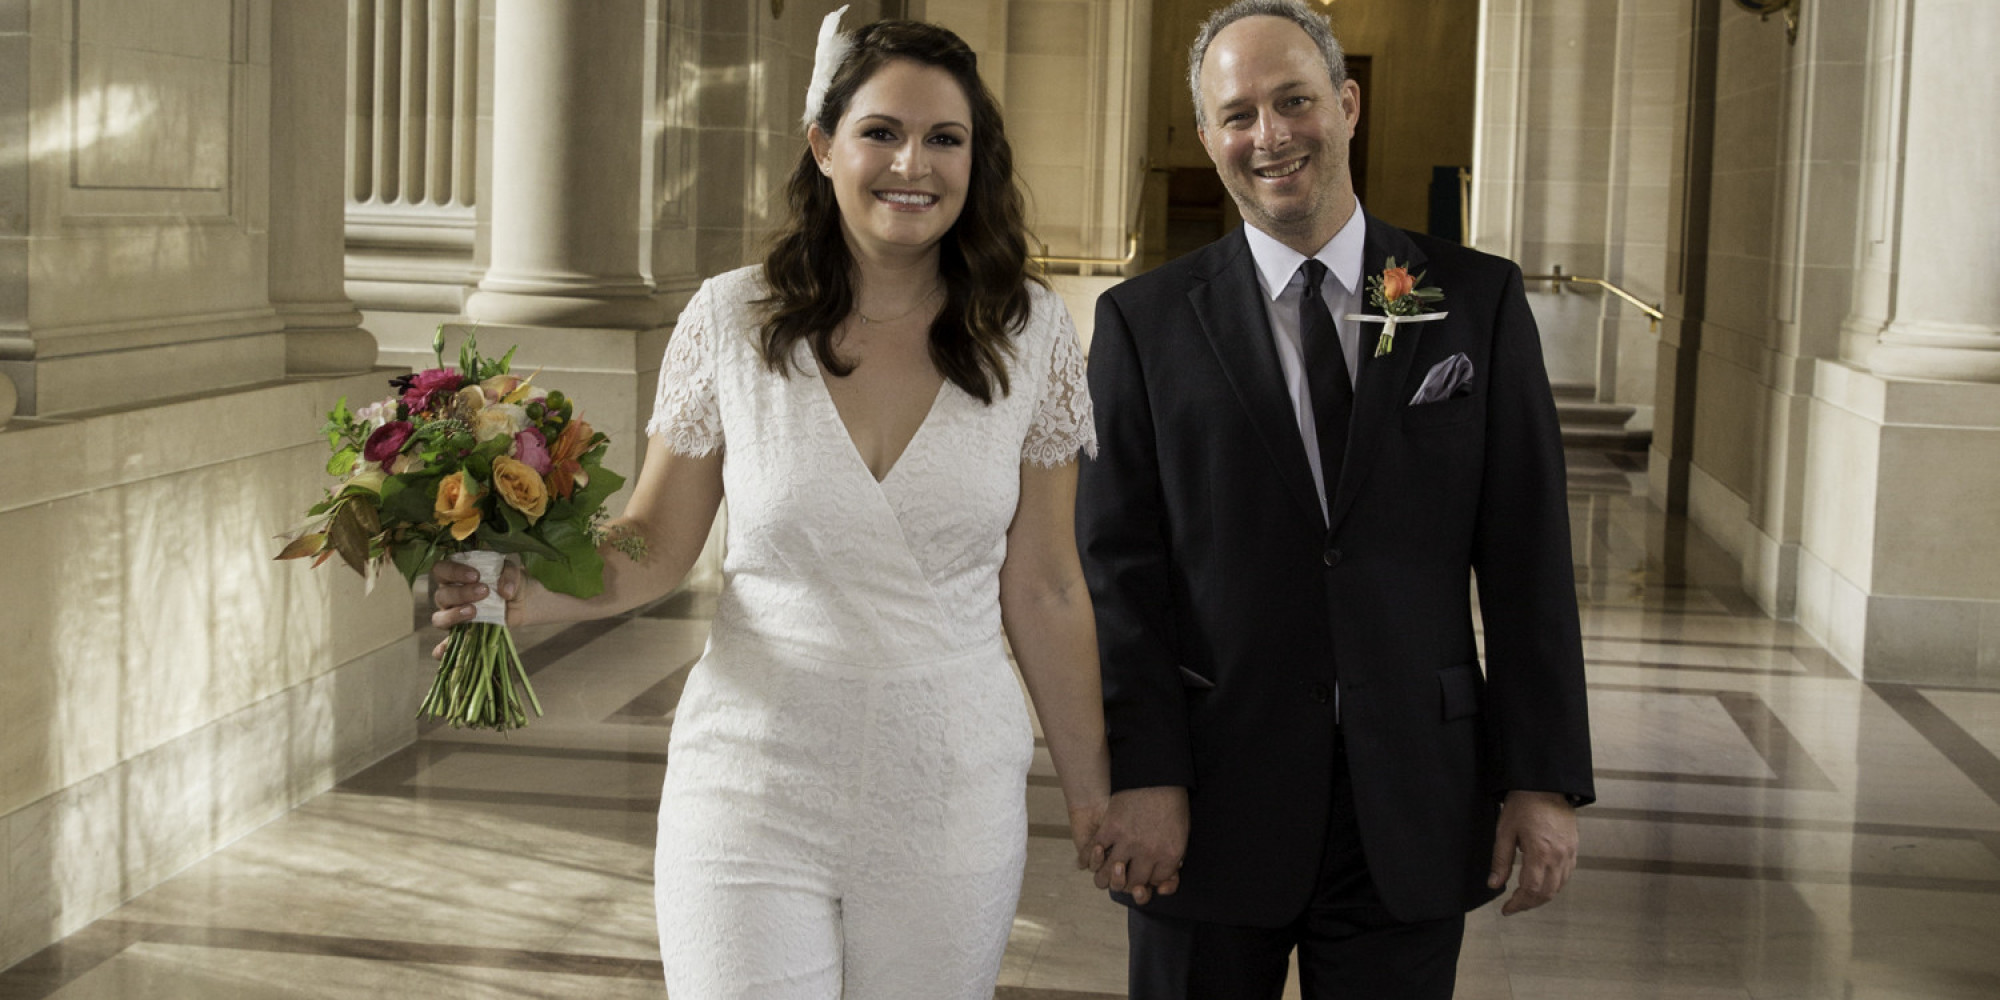 Real Weddings Com: See Who Got Married This Weekend!